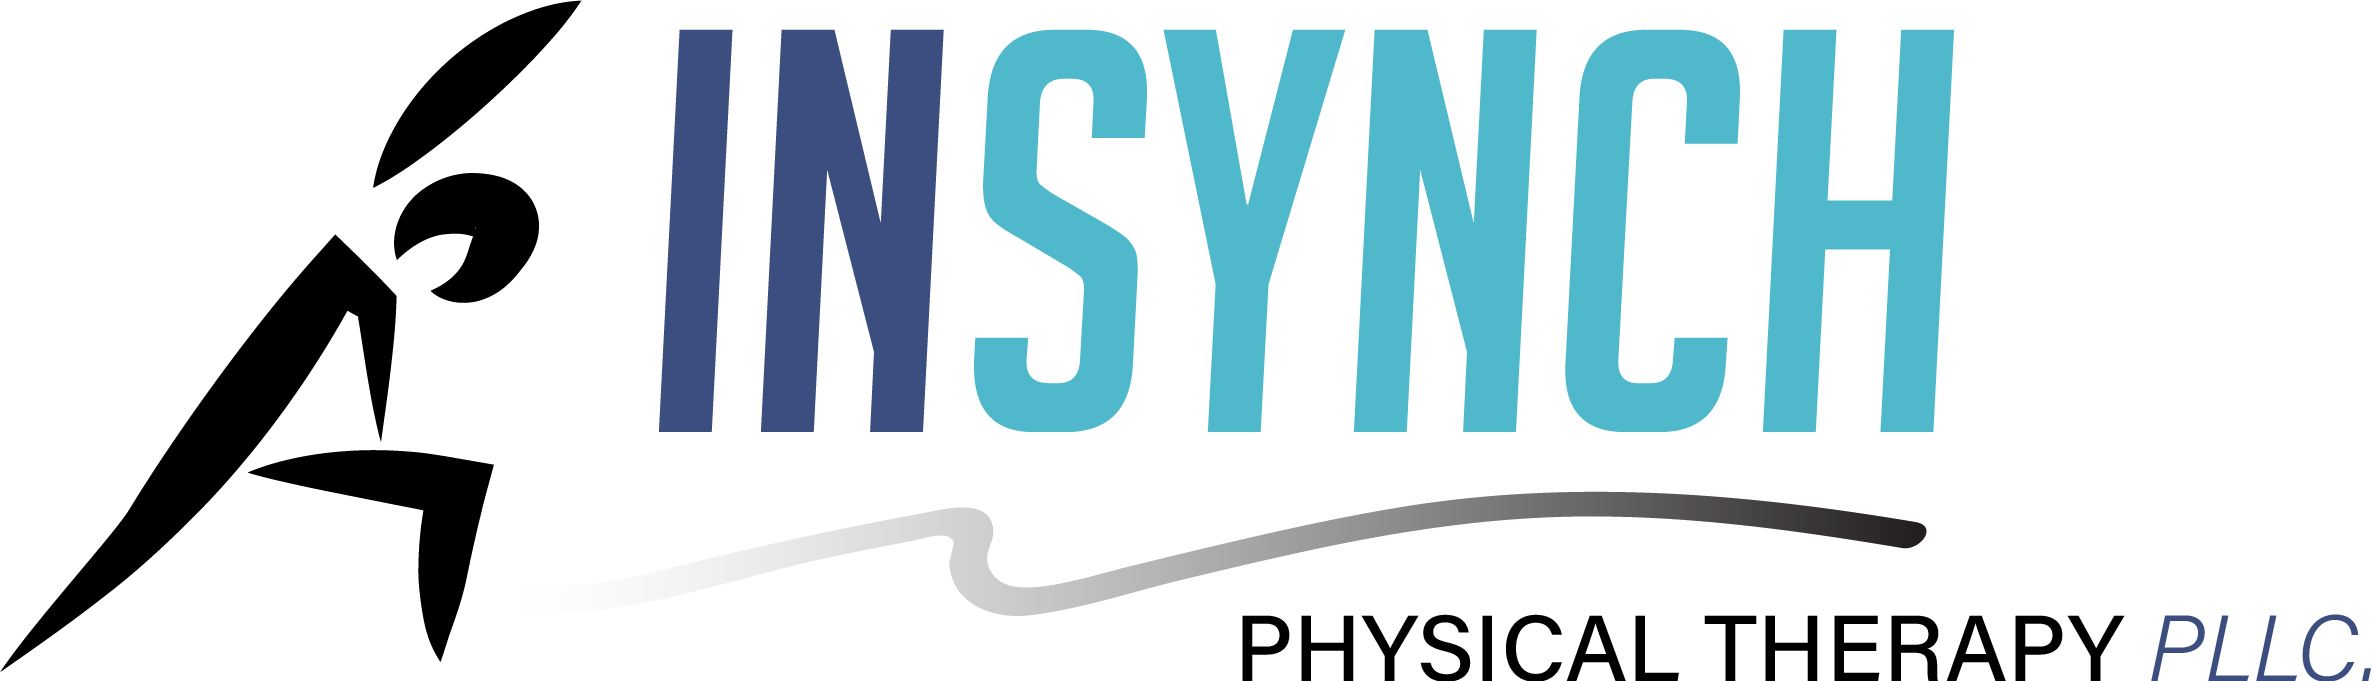 InSynch PT | New Patients